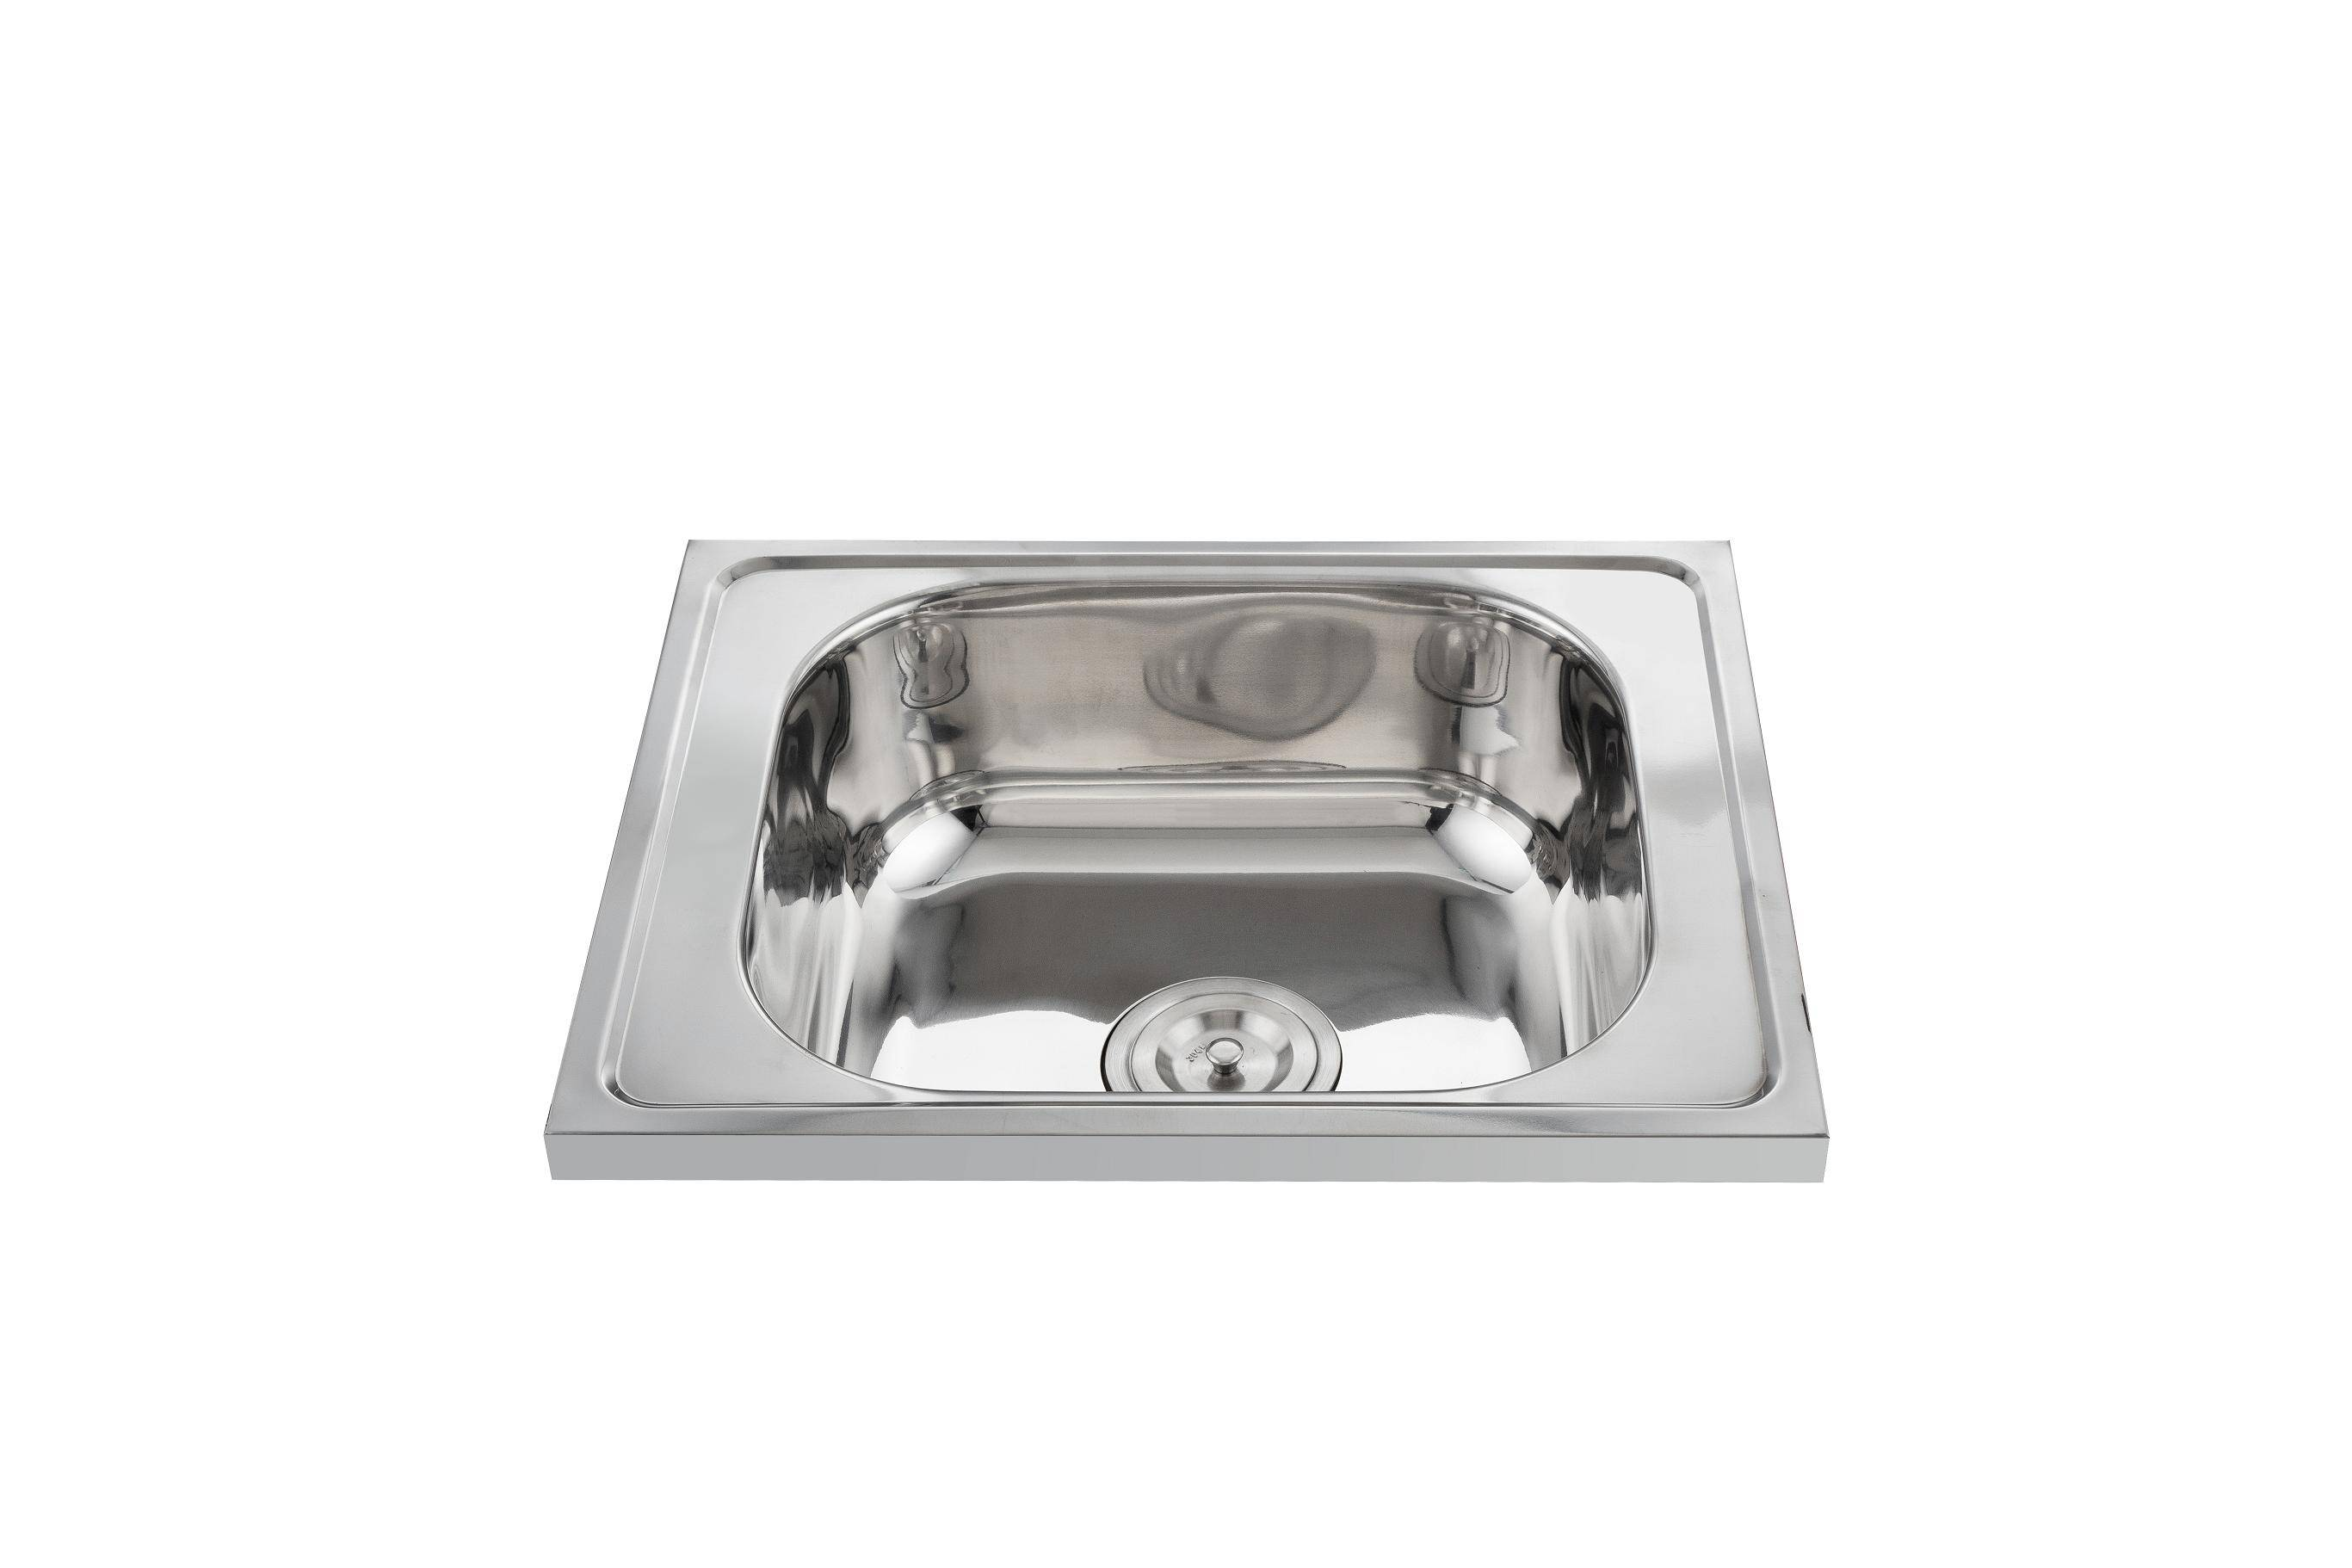 Reliable quality 5040 rectangular kitchen sink without drainboard